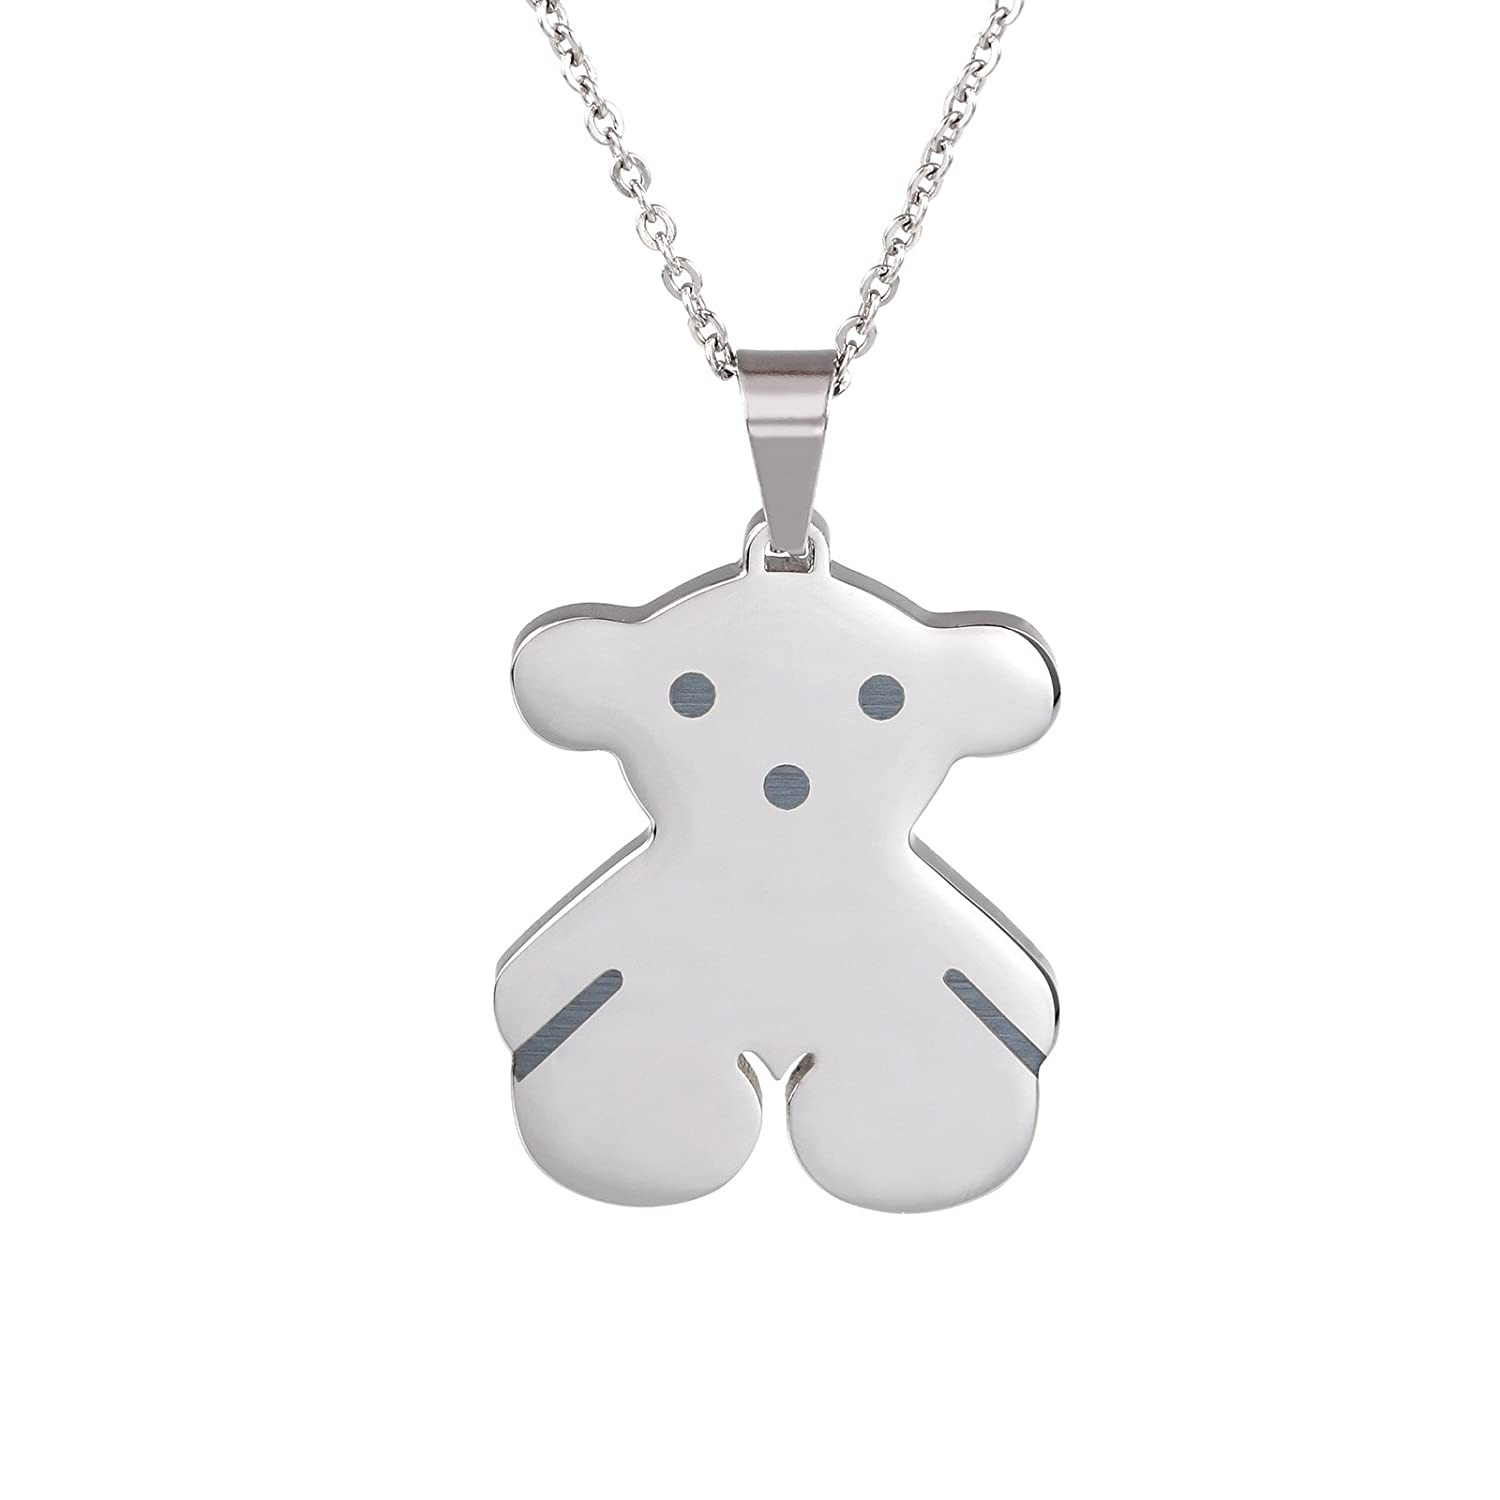 sterling tdw orders diamond silver jewelry on k shipping product over j teddy necklace watches free bear pendant overstock